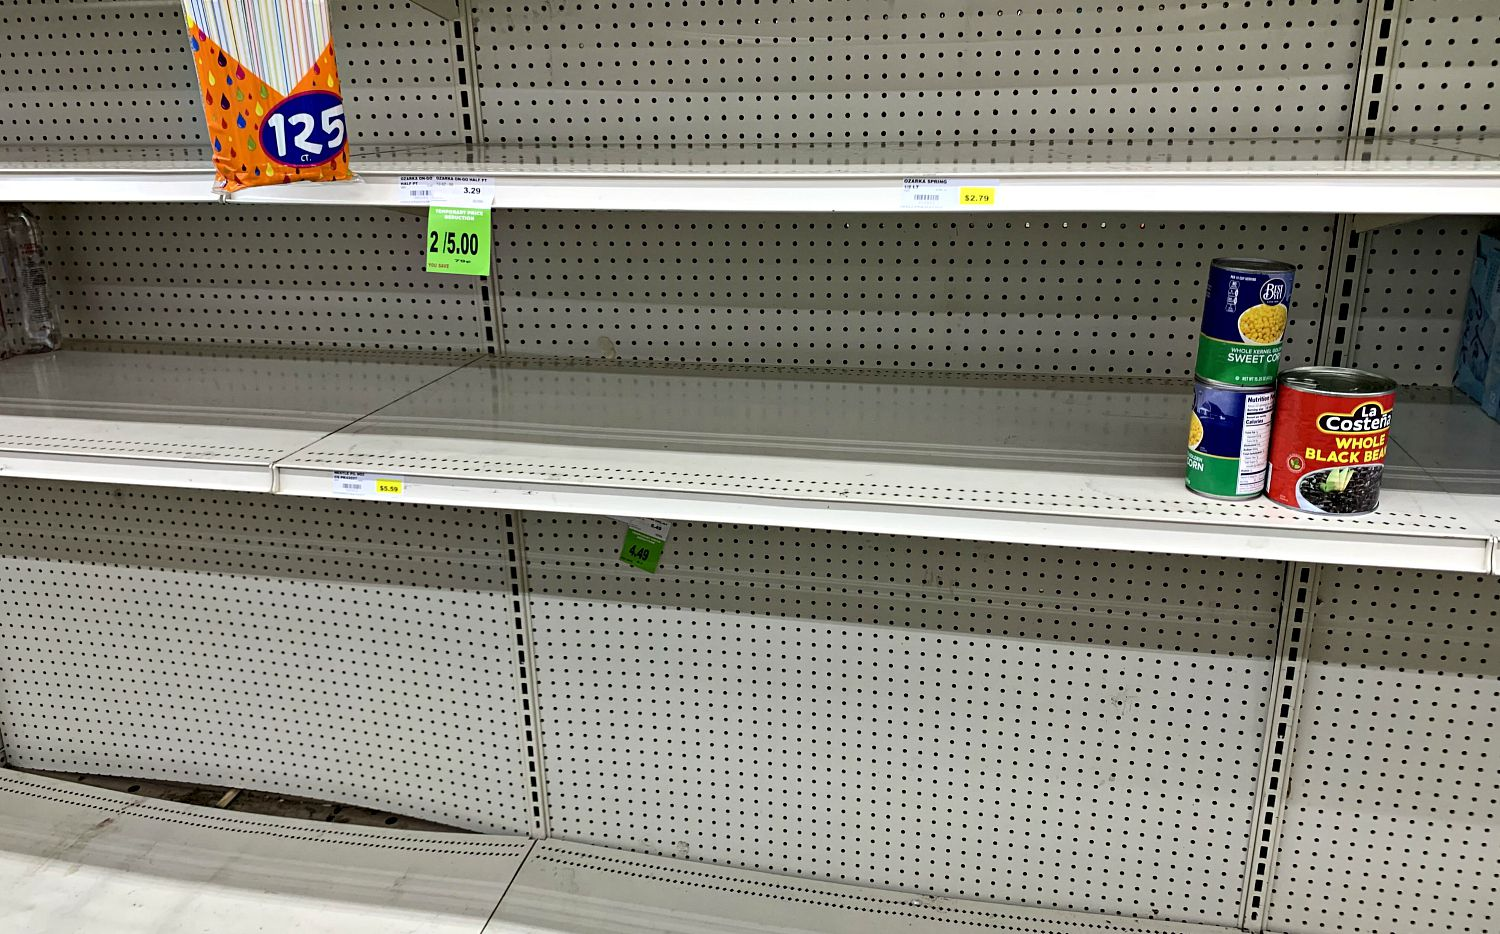 Empty shelves at the Rio Grande Latin Market on Webb Chapel Road in northwest Dallas Friday morning